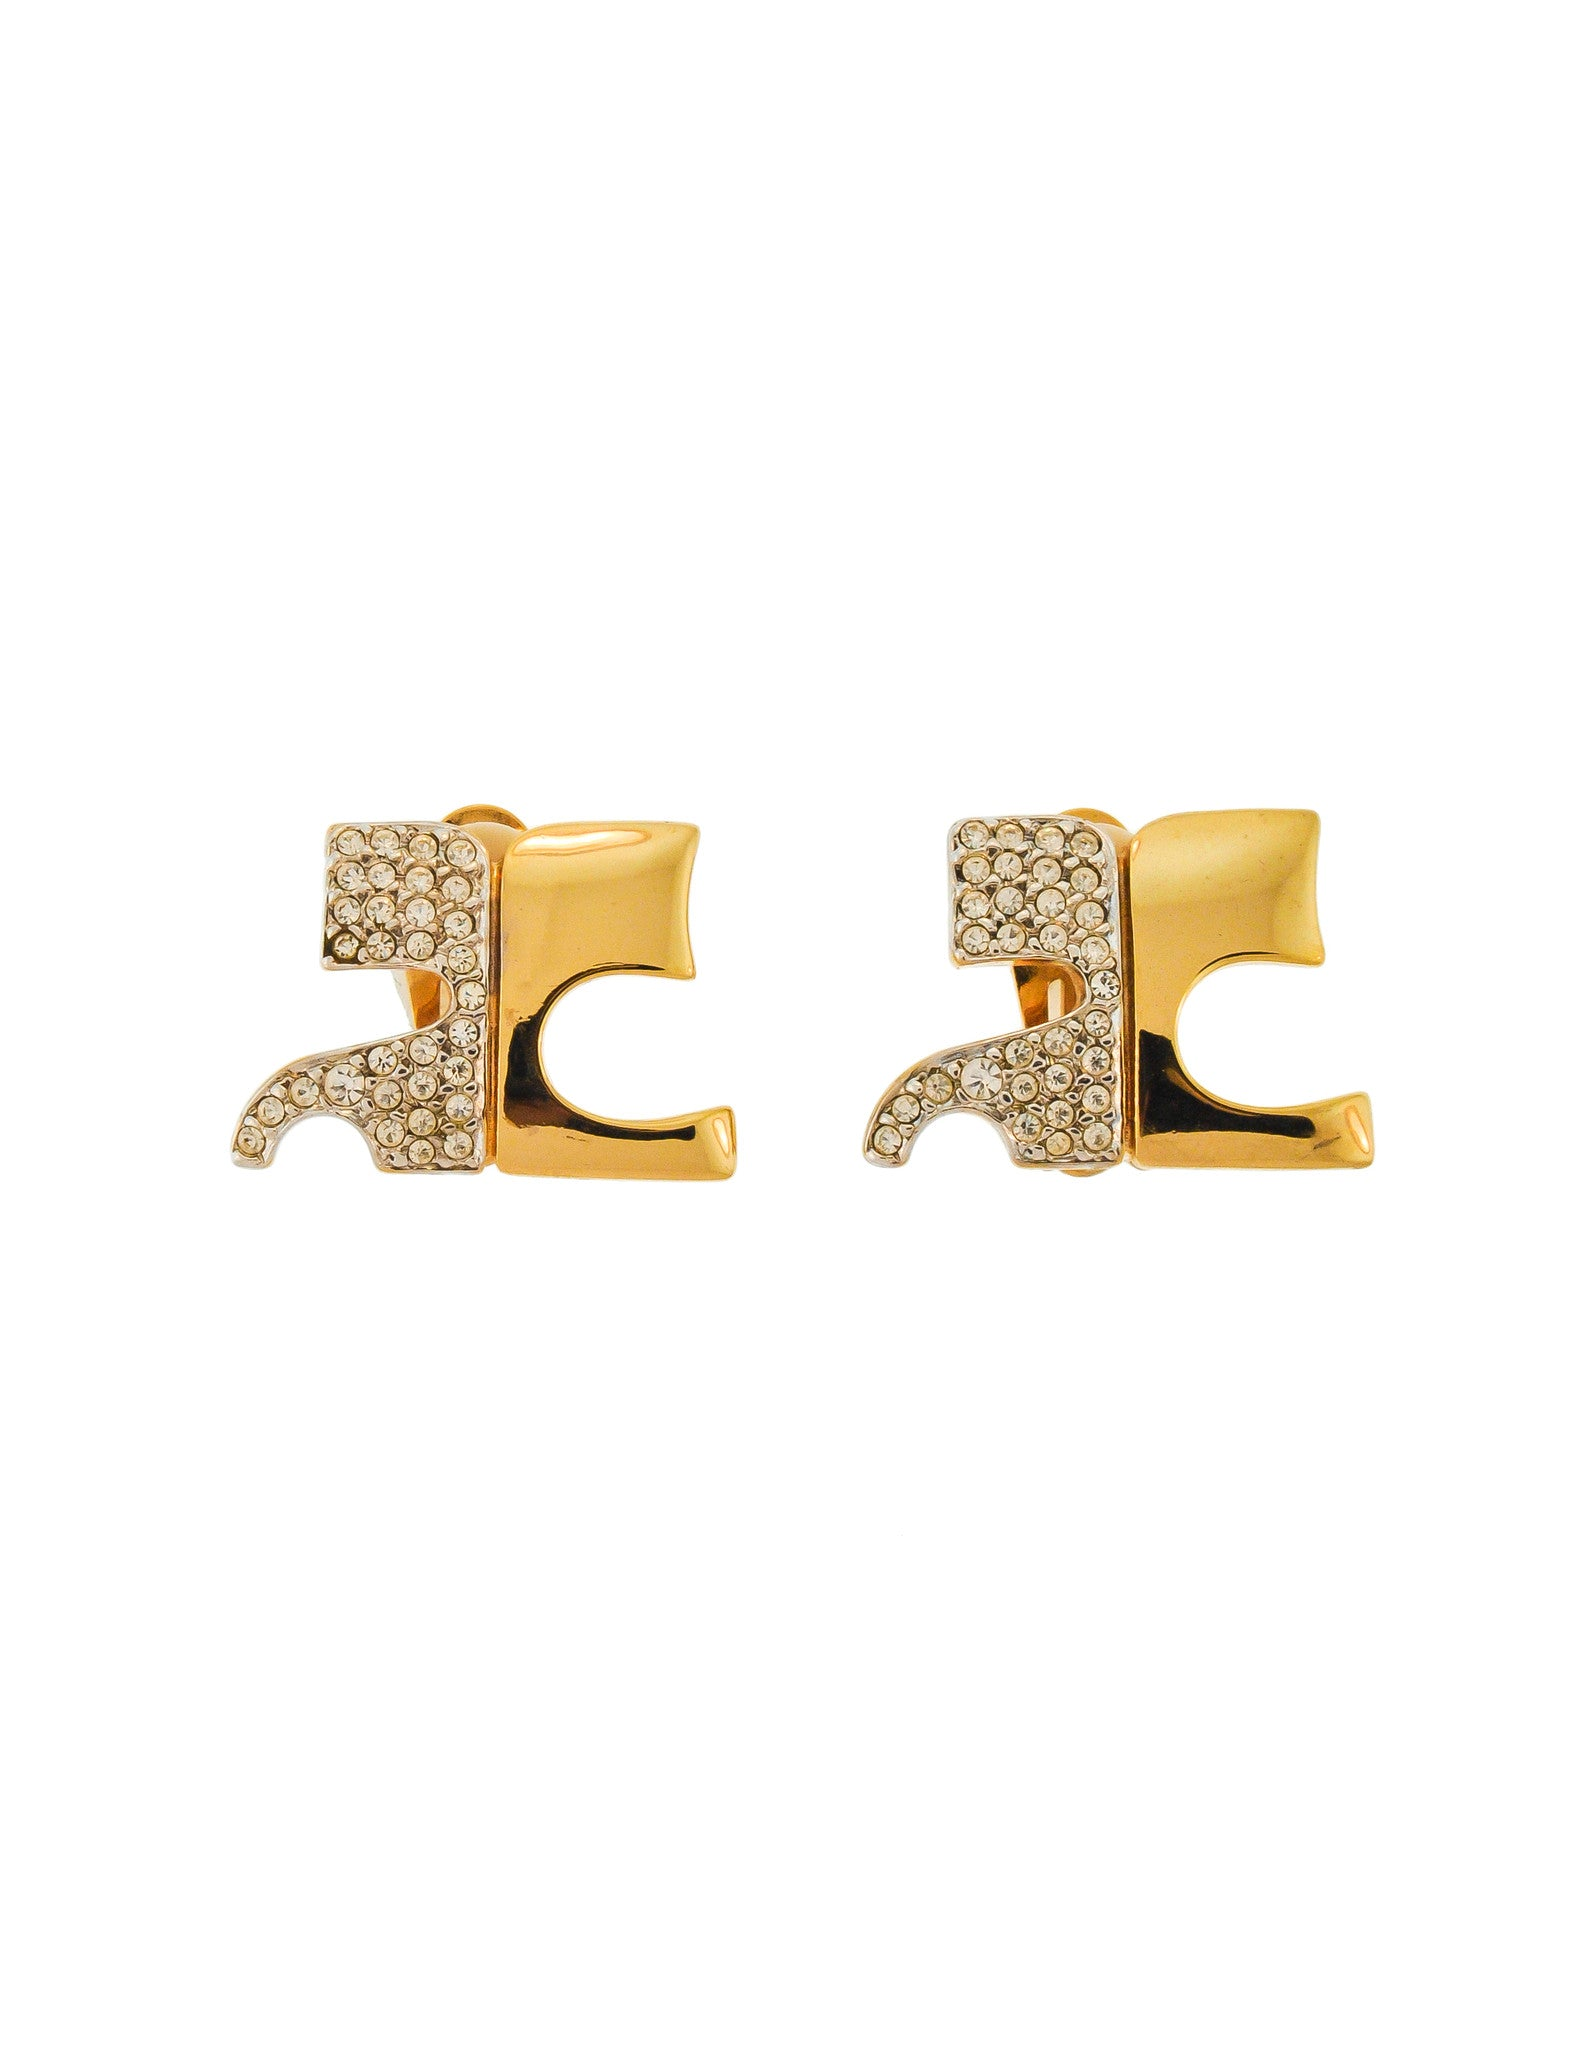 Courrèges Vintage Signature Gold Rhinestone Earrings - Amarcord Vintage Fashion  - 1